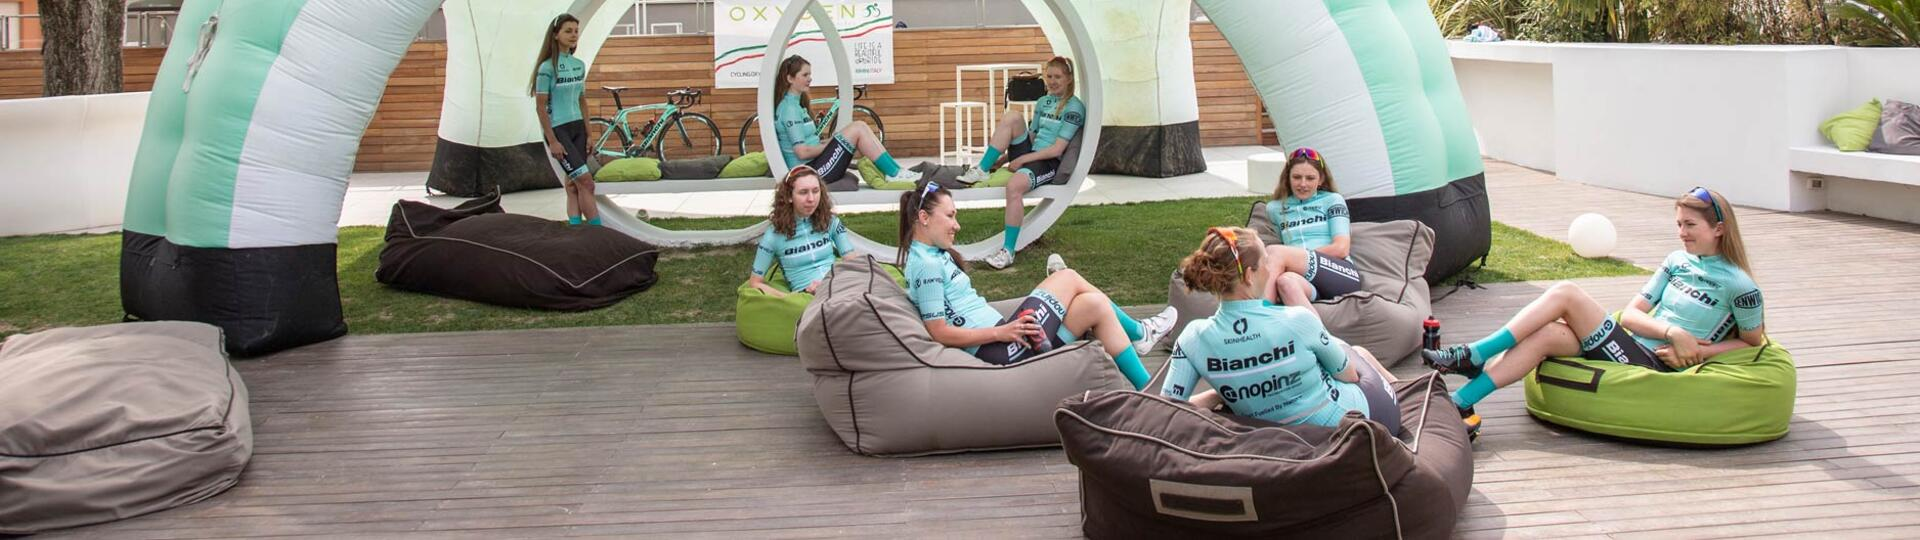 cycling.oxygenhotel en road-bike-a-weekend-on-everest 014